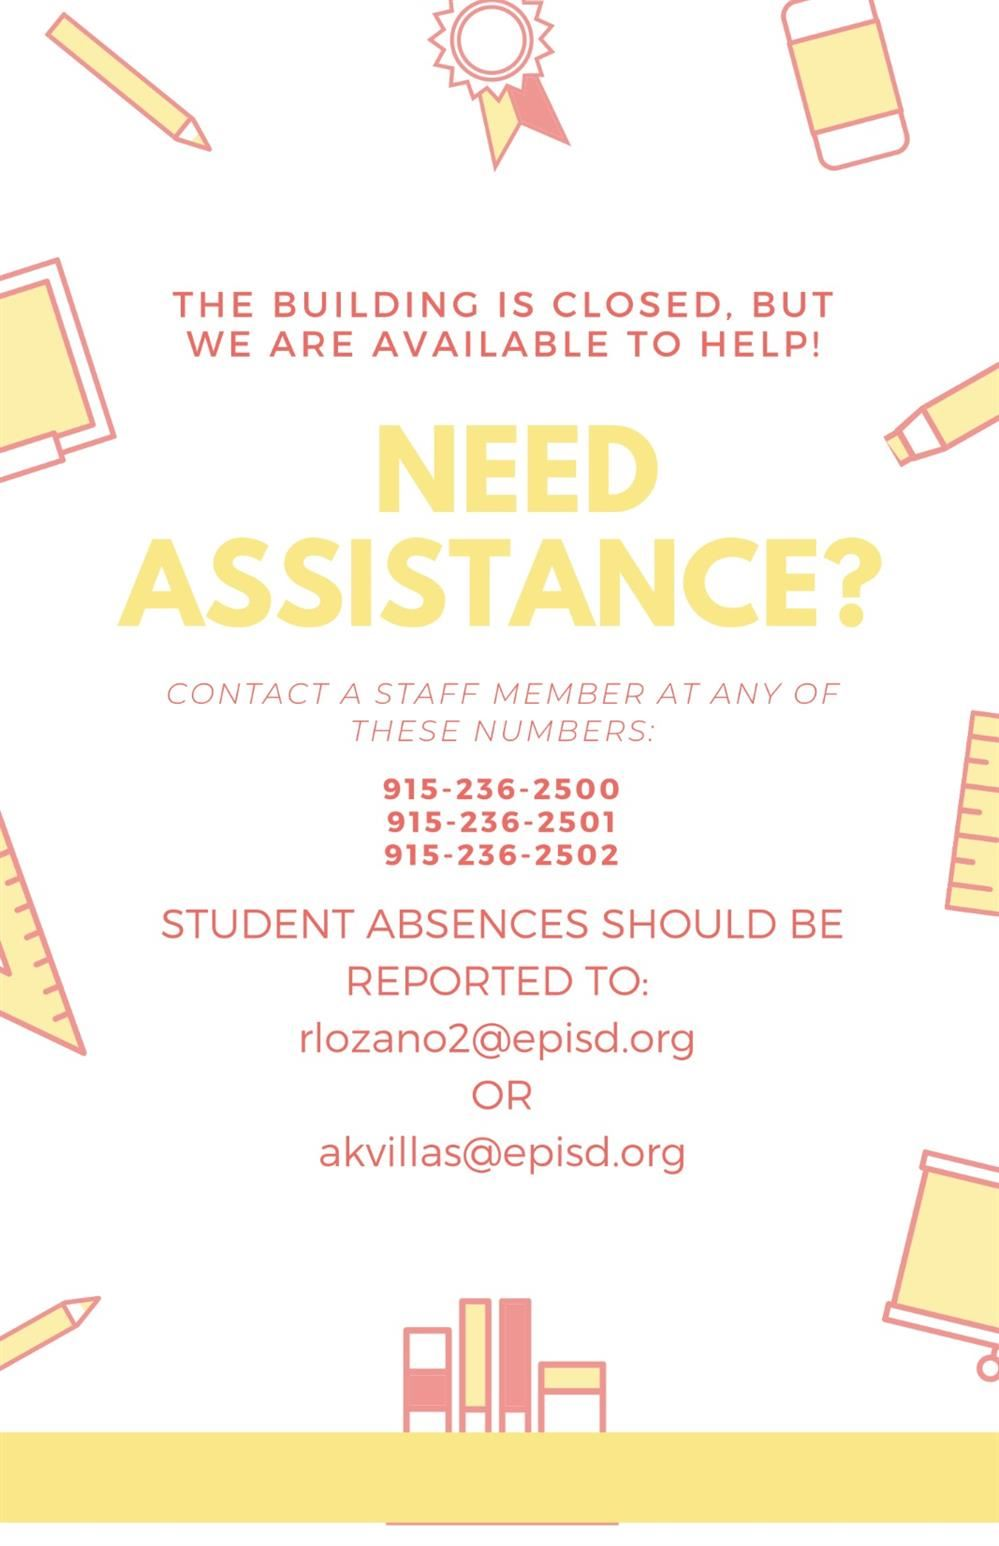 PLEASE CONTACT US IF YOU NEED ASSISTANCE